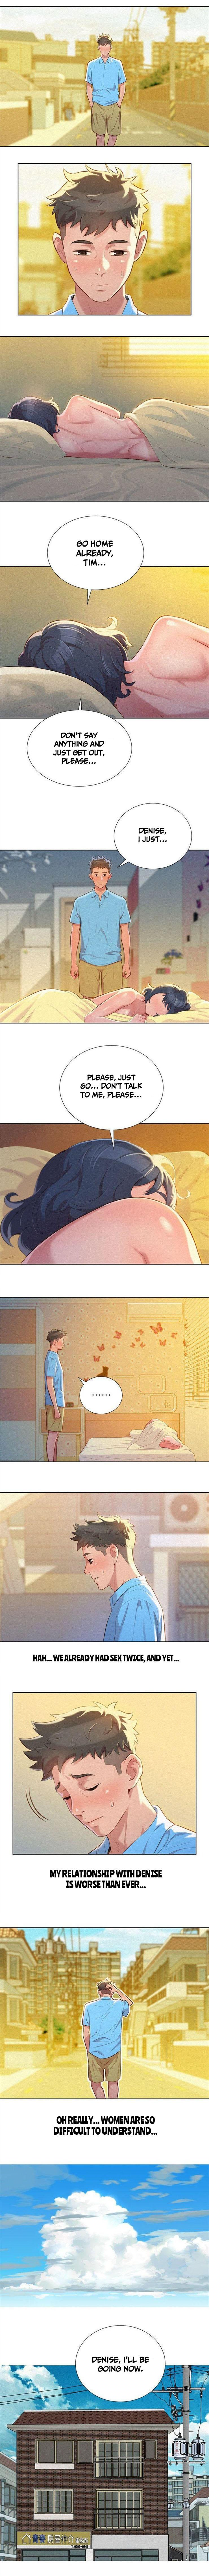 What do you Take me For? Ch.42/? 310